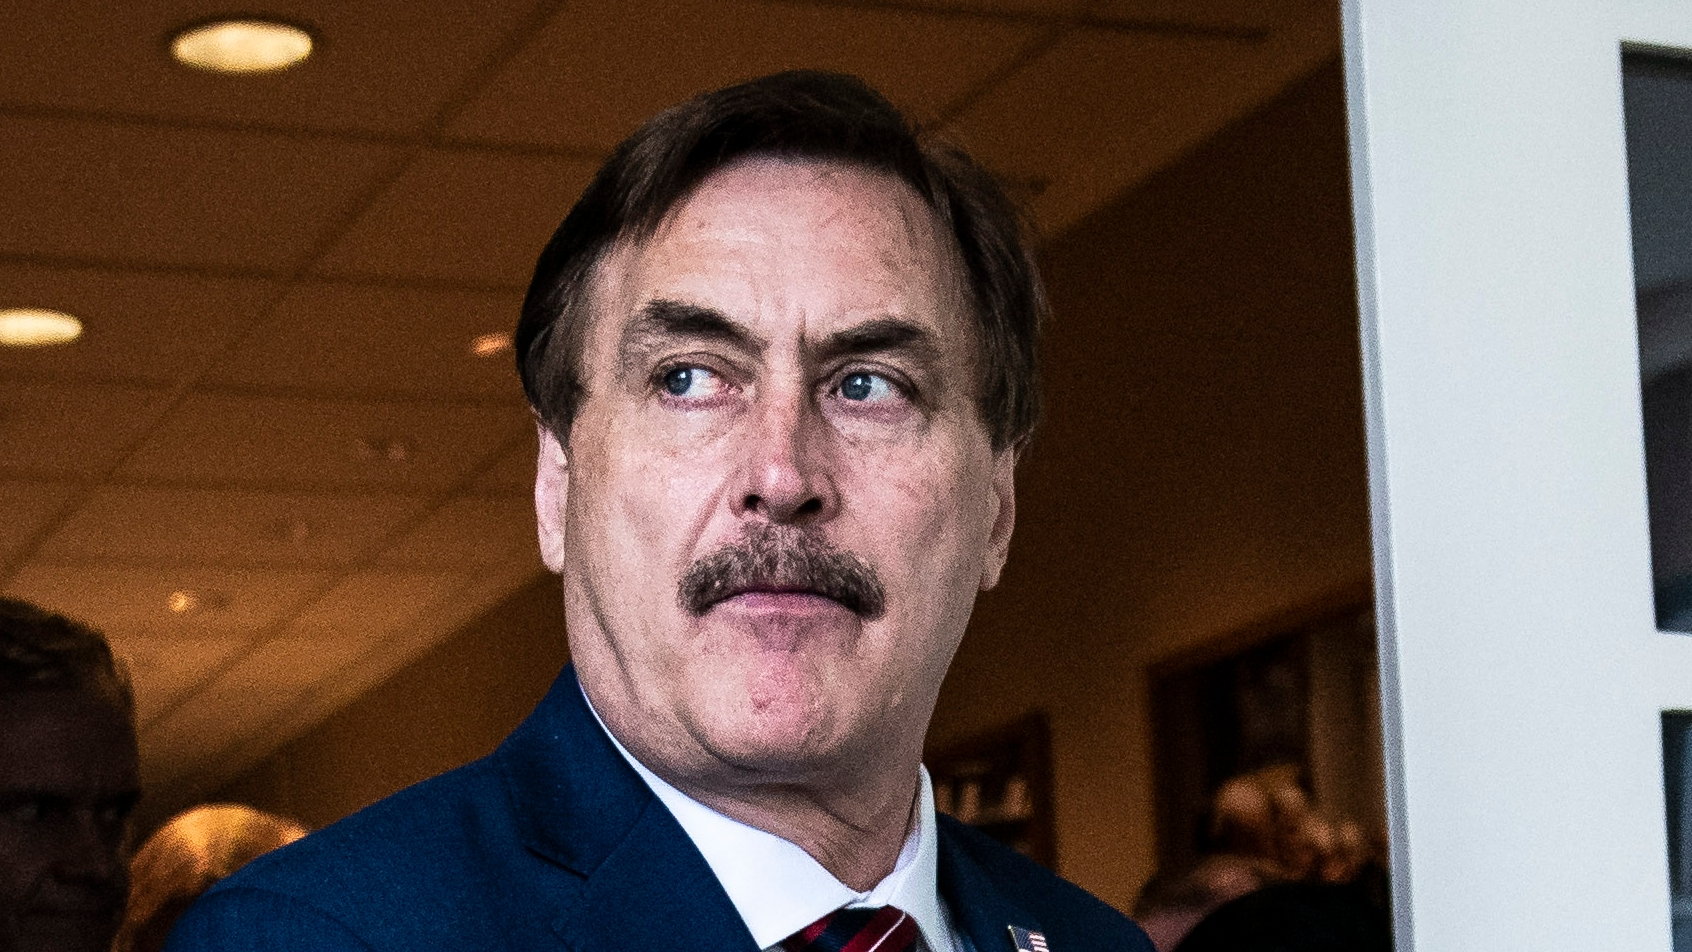 the mypillow ceo mike lindell prompts